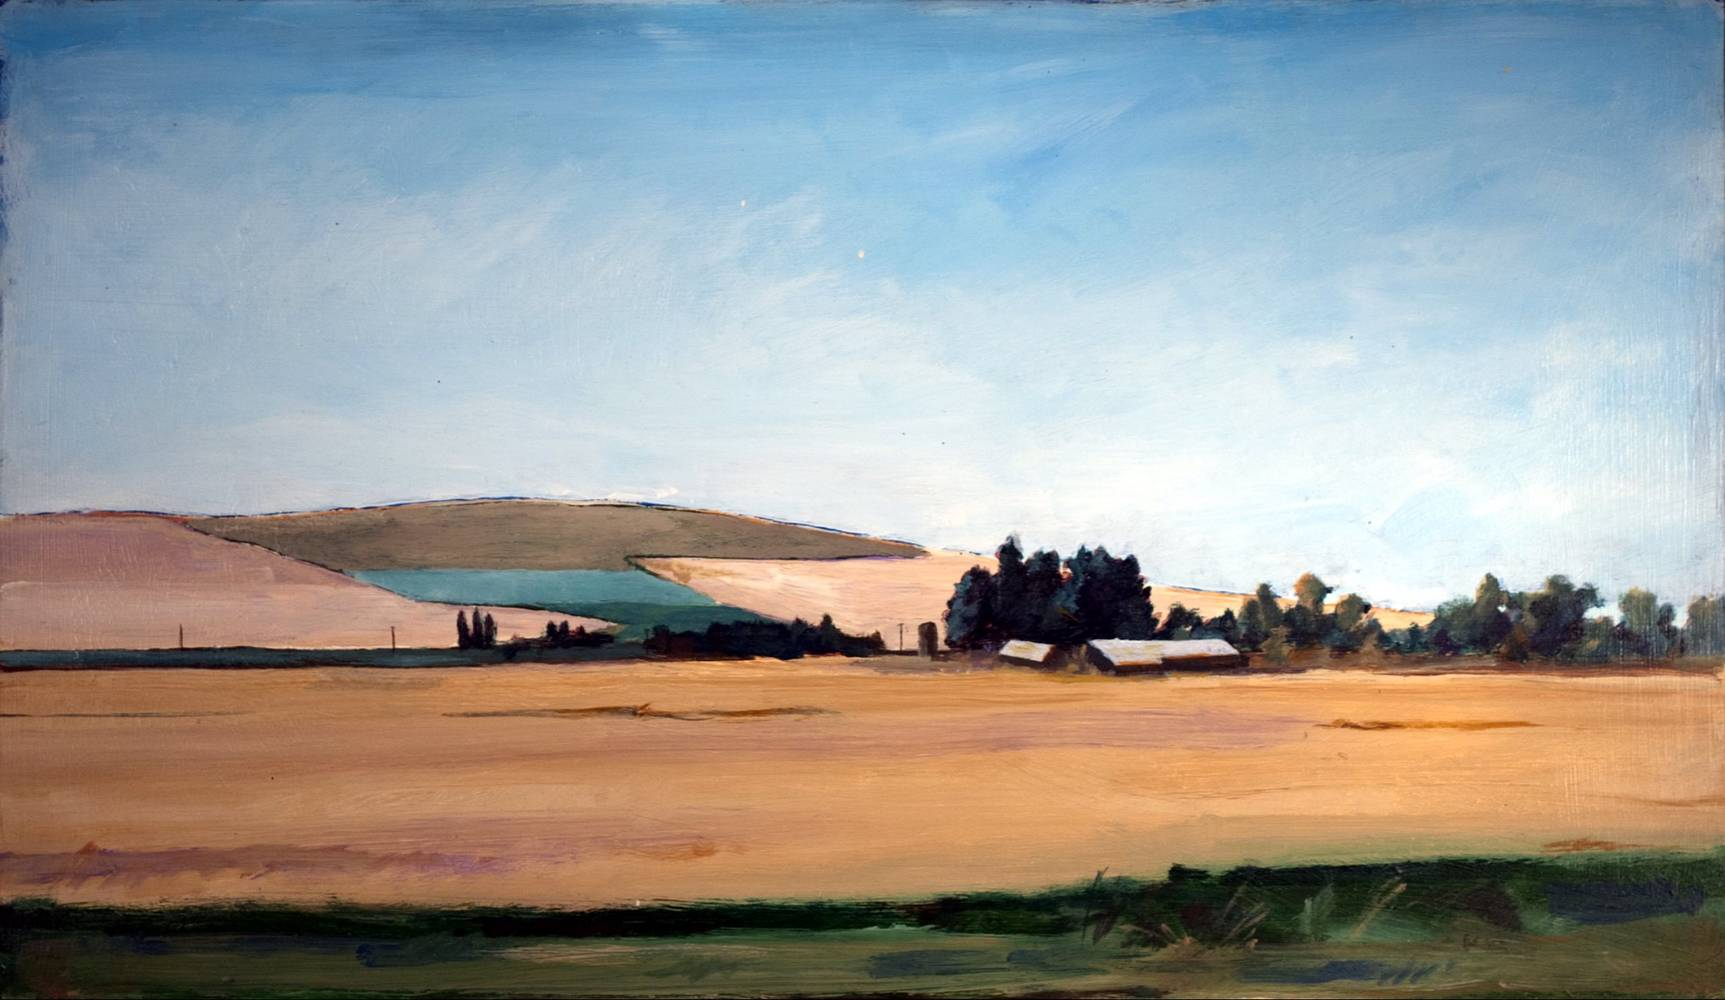 Oil painting Private Idaho by Paul Sershon